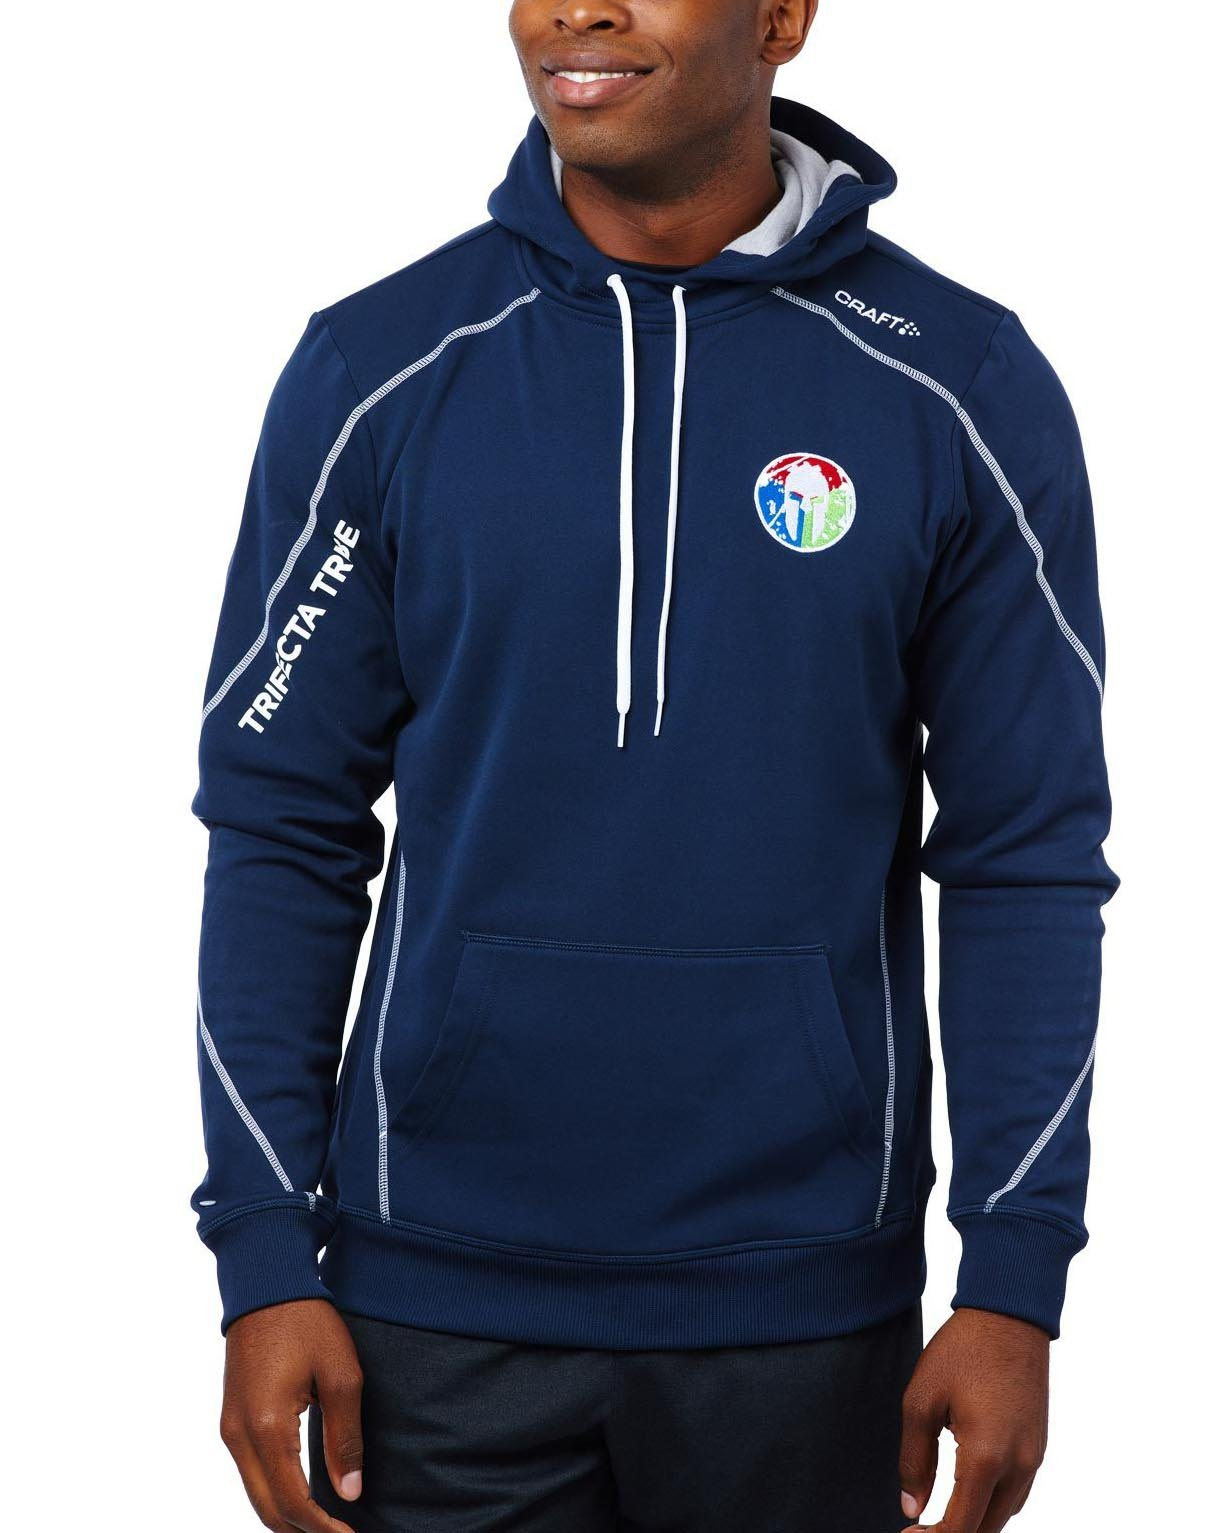 CRAFT SPARTAN By CRAFT Trifecta Hoodie - Men's Navy S